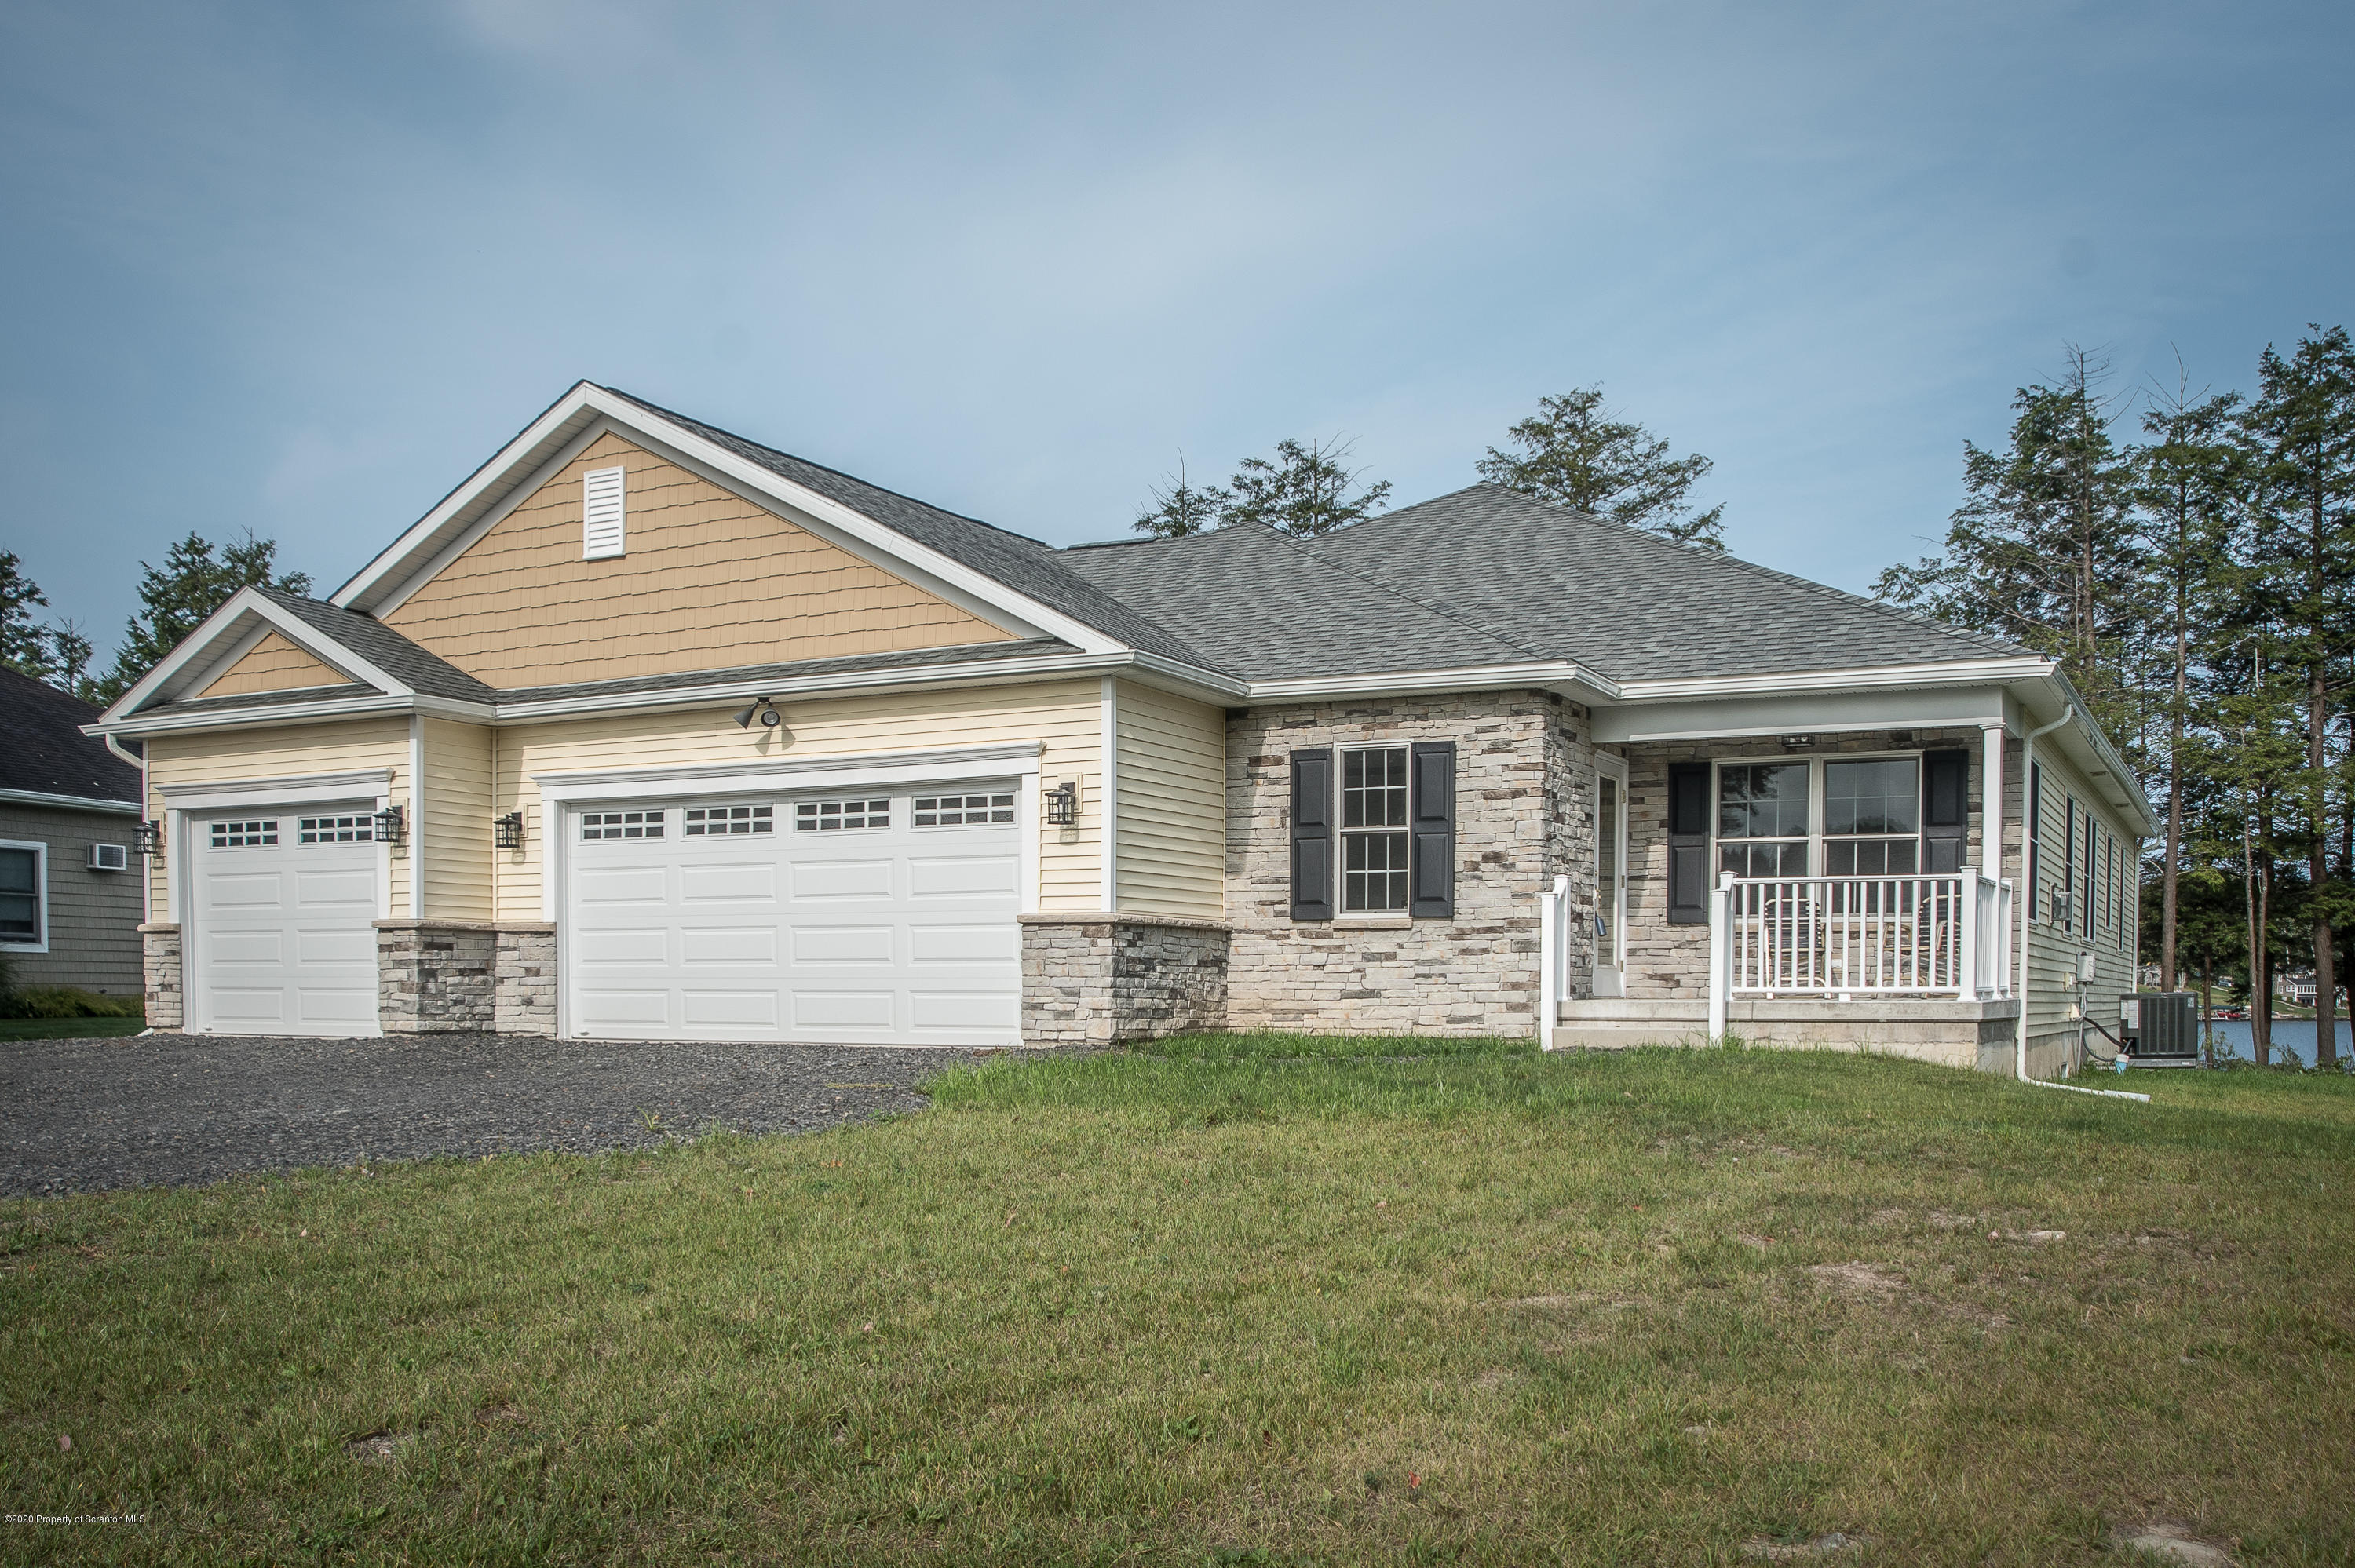 177 Wagner Blvd, Greenfield Twp, Pennsylvania 18407, 3 Bedrooms Bedrooms, 6 Rooms Rooms,3 BathroomsBathrooms,Single Family,For Sale,Wagner Blvd,20-4350